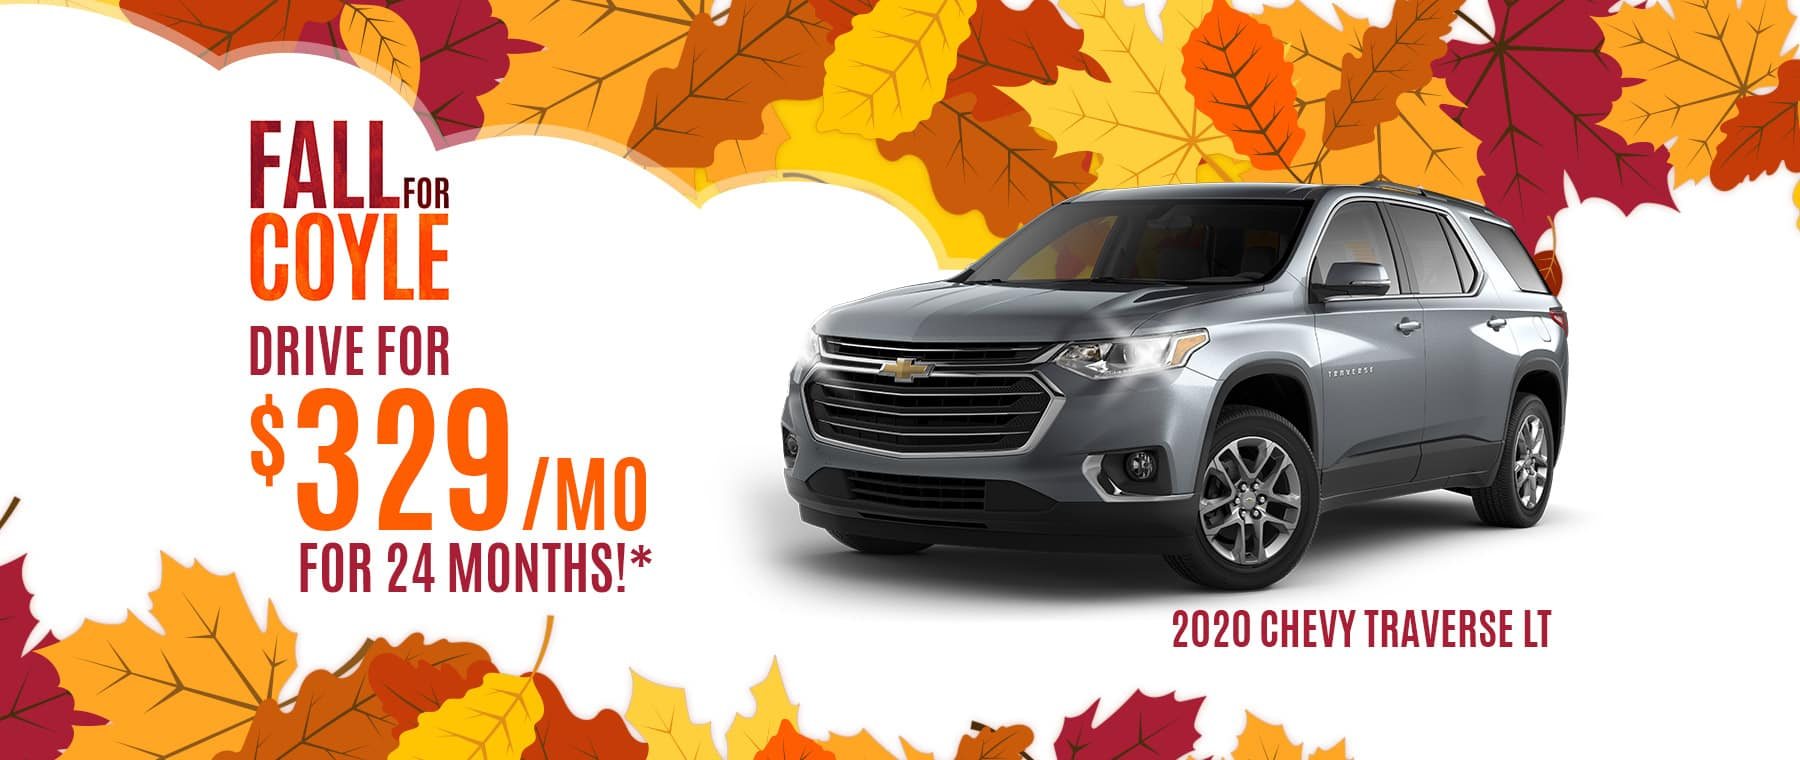 Lease a new 2020 Chevrolet Traverse near Watson, Indiana